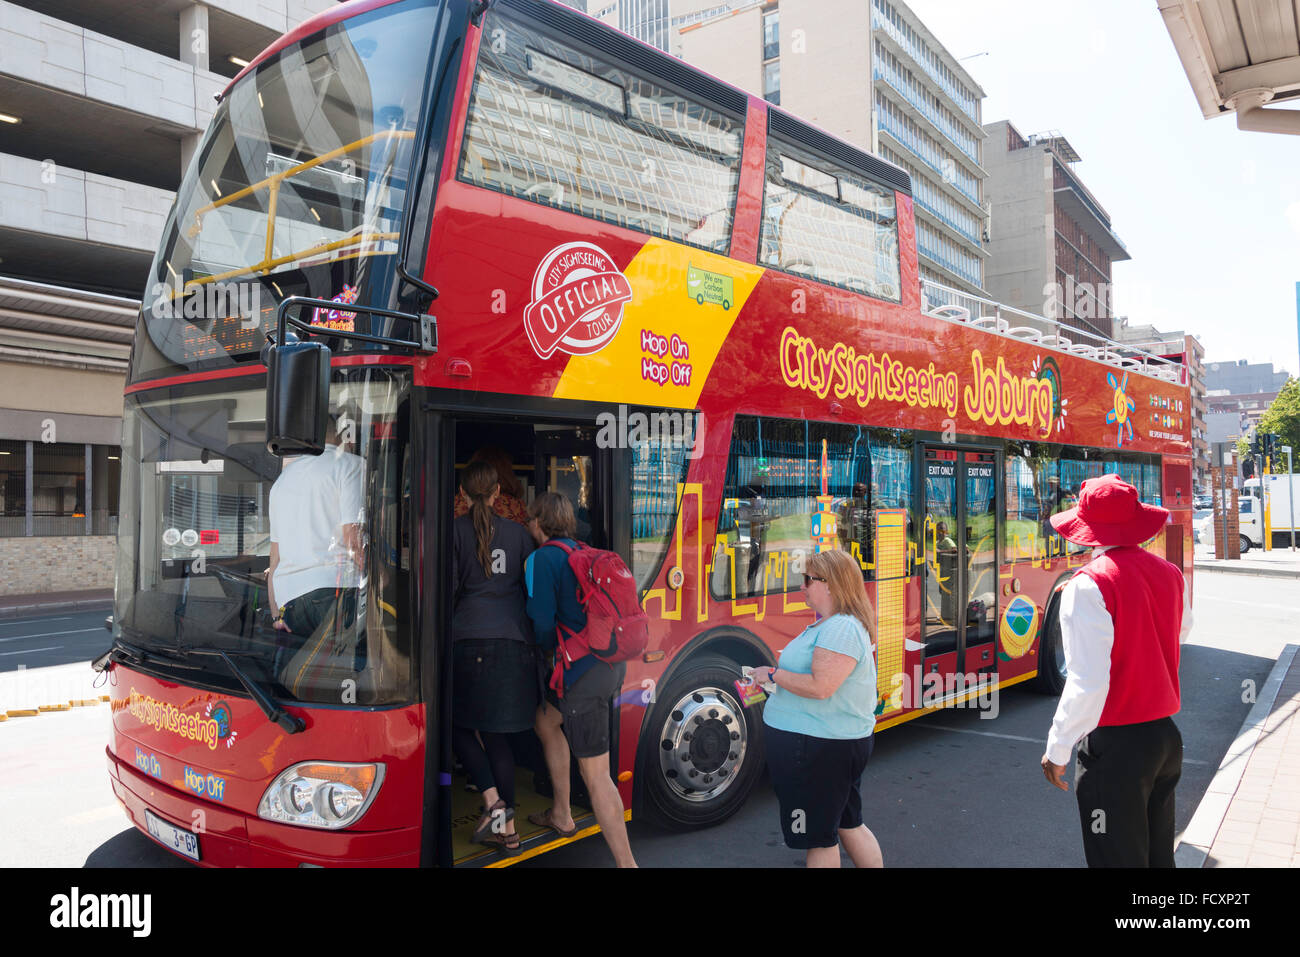 City Sightseeing Bus, Johannesburg, City of Johannesburg Metropolitan Municipality, Gauteng Province, Republic of - Stock Image